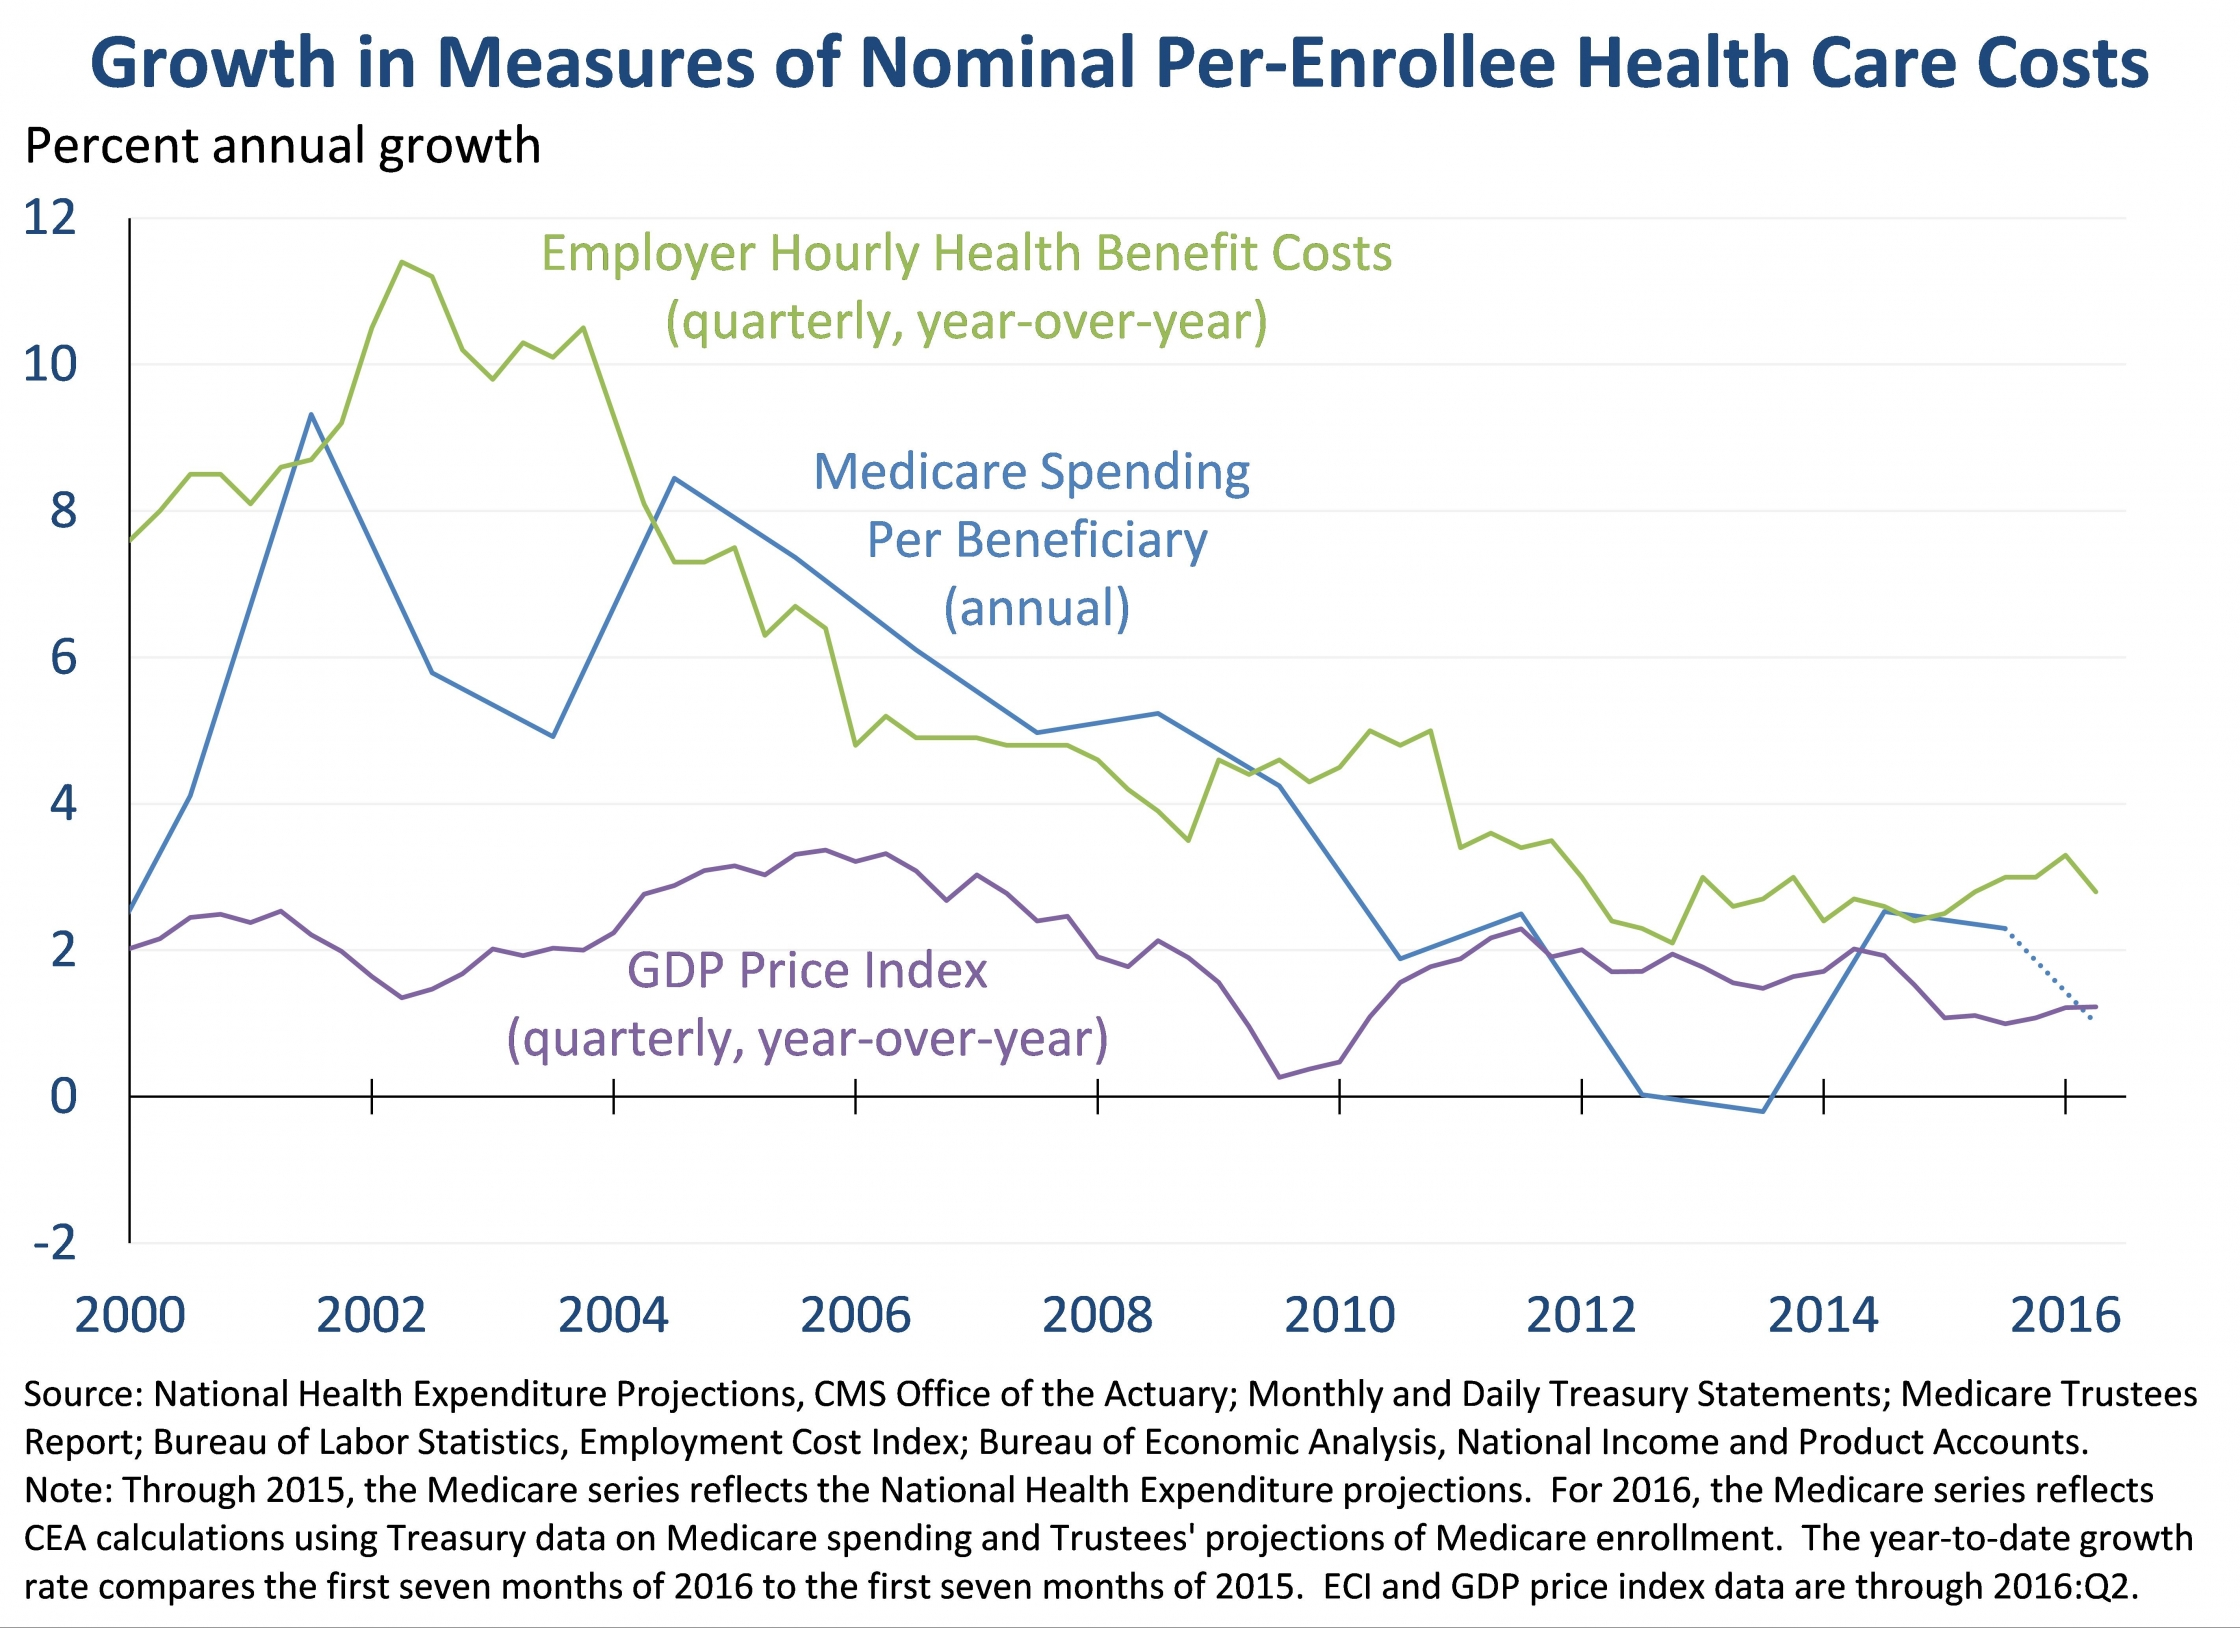 Growth in Measures of Nominal Per-Enrollee Health Care Costs